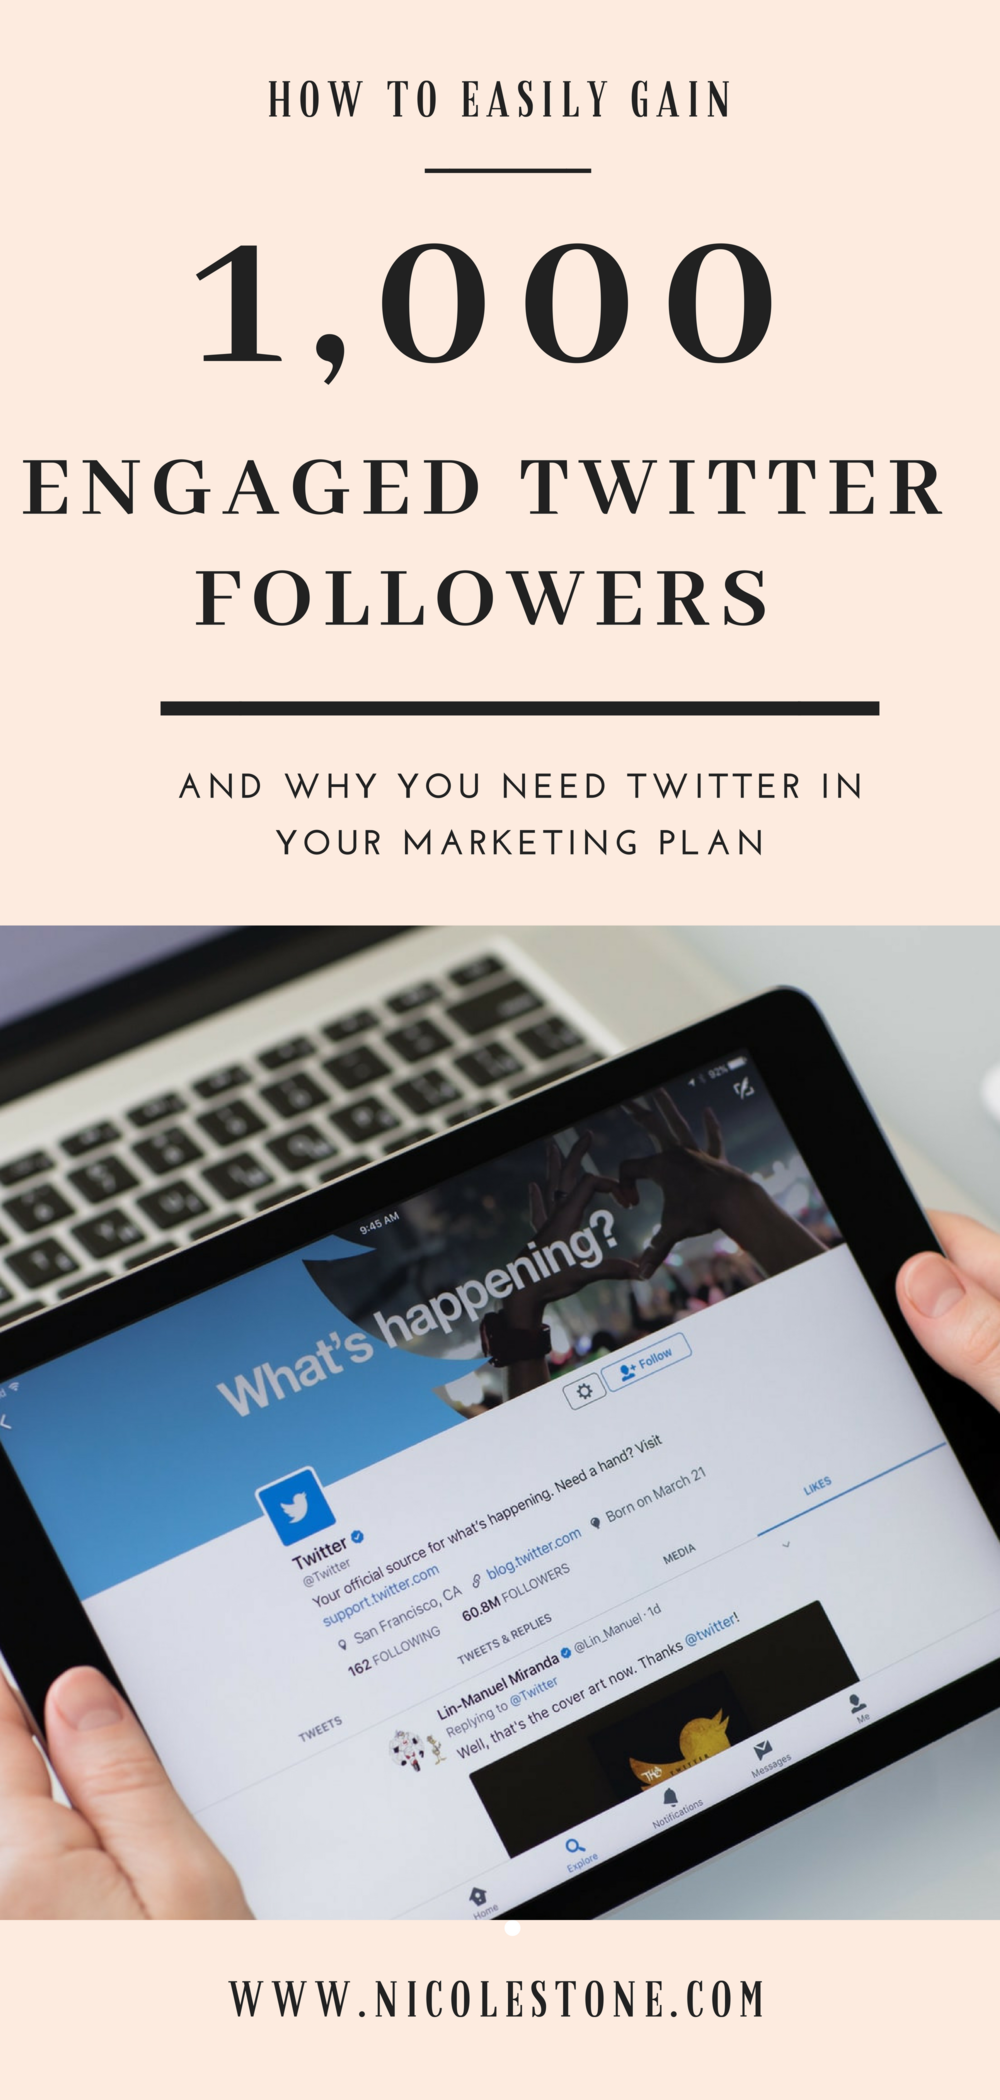 Need to gain Twitter traffic?! Use this ENGAGING media method, where you post videos and photos to generate a traffic driving Twitter account. Gain your first 1,000 followers NOW! #socialmedia #twitter #marketing